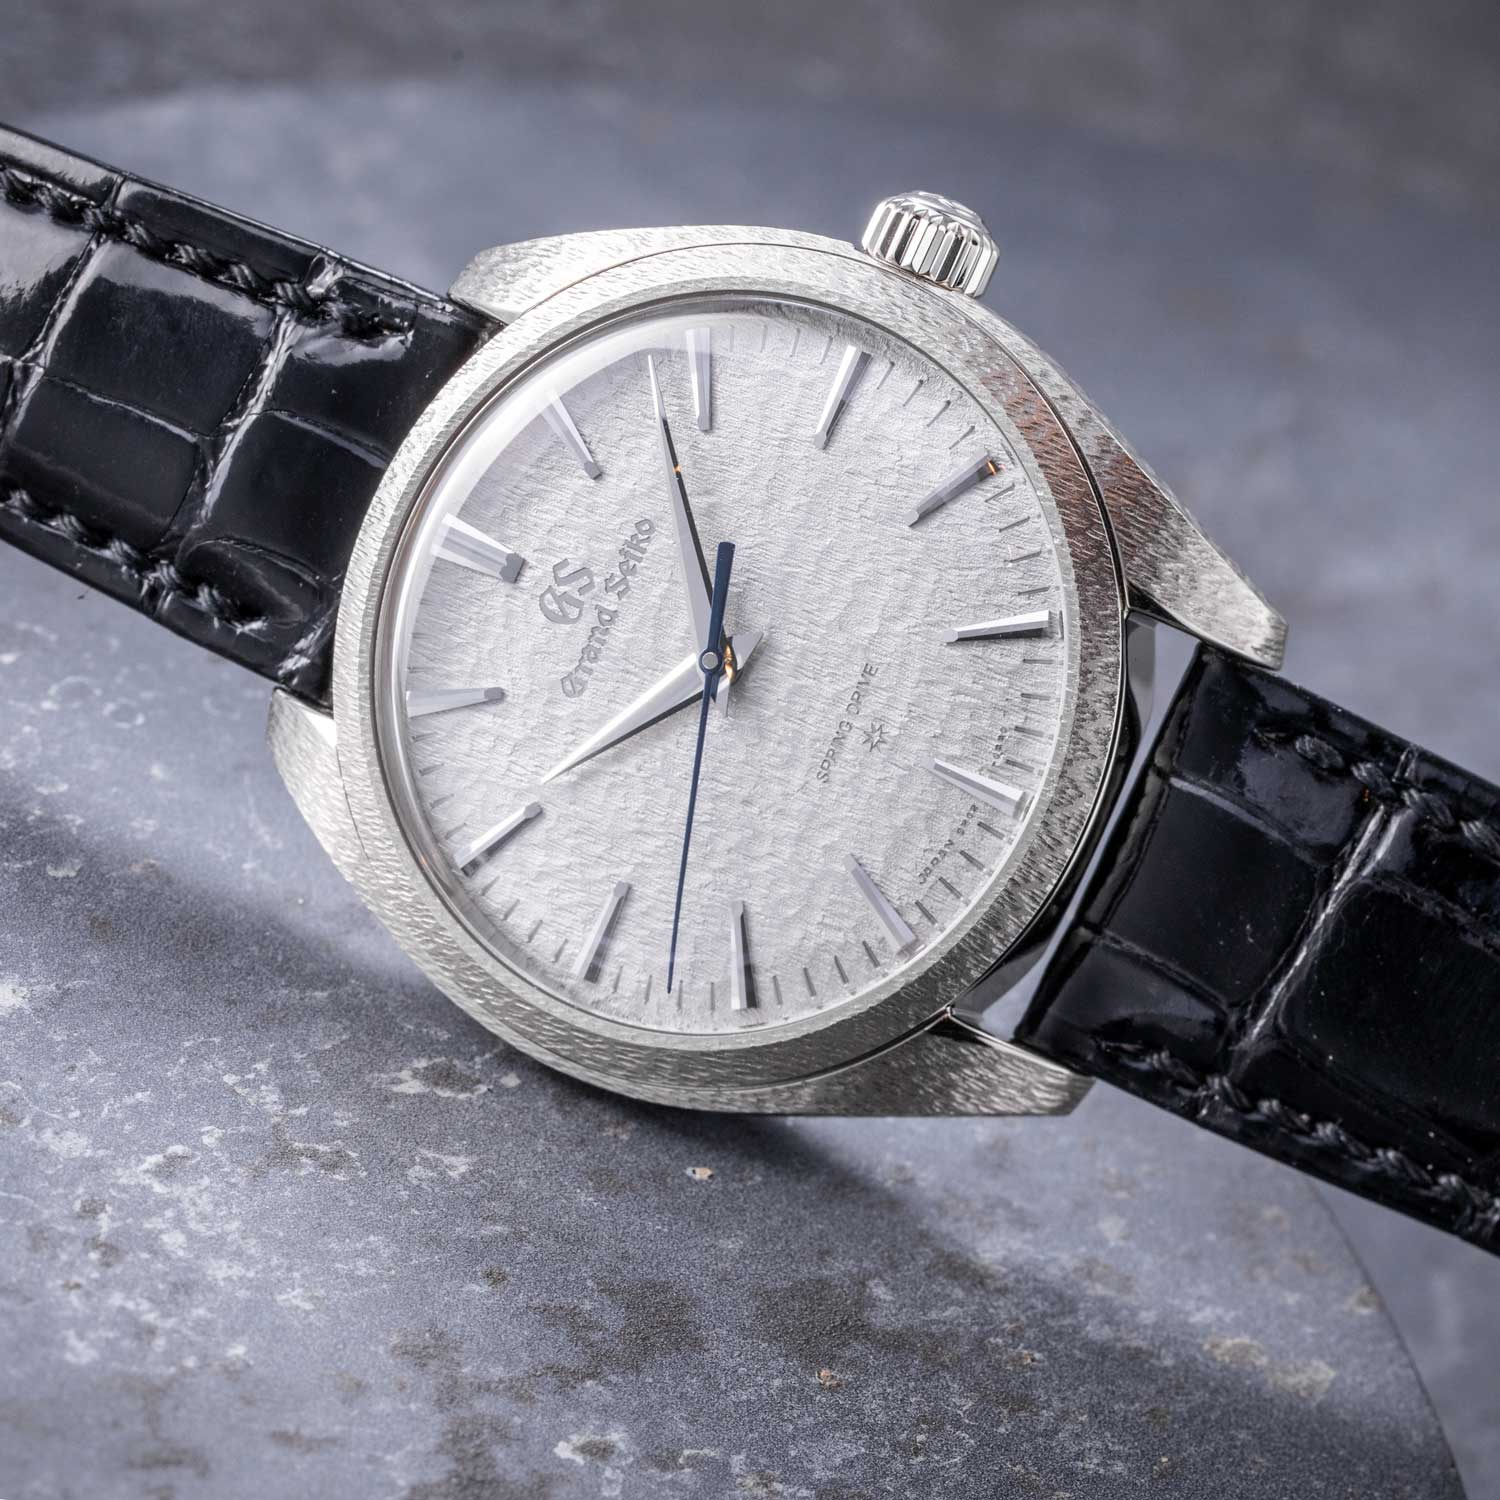 The 2019 Grand Seiko 20th Anniversary Of Spring Drive, in platinum - limited to 30 pieces - ref. SBGZ001 (Image © Revolution)